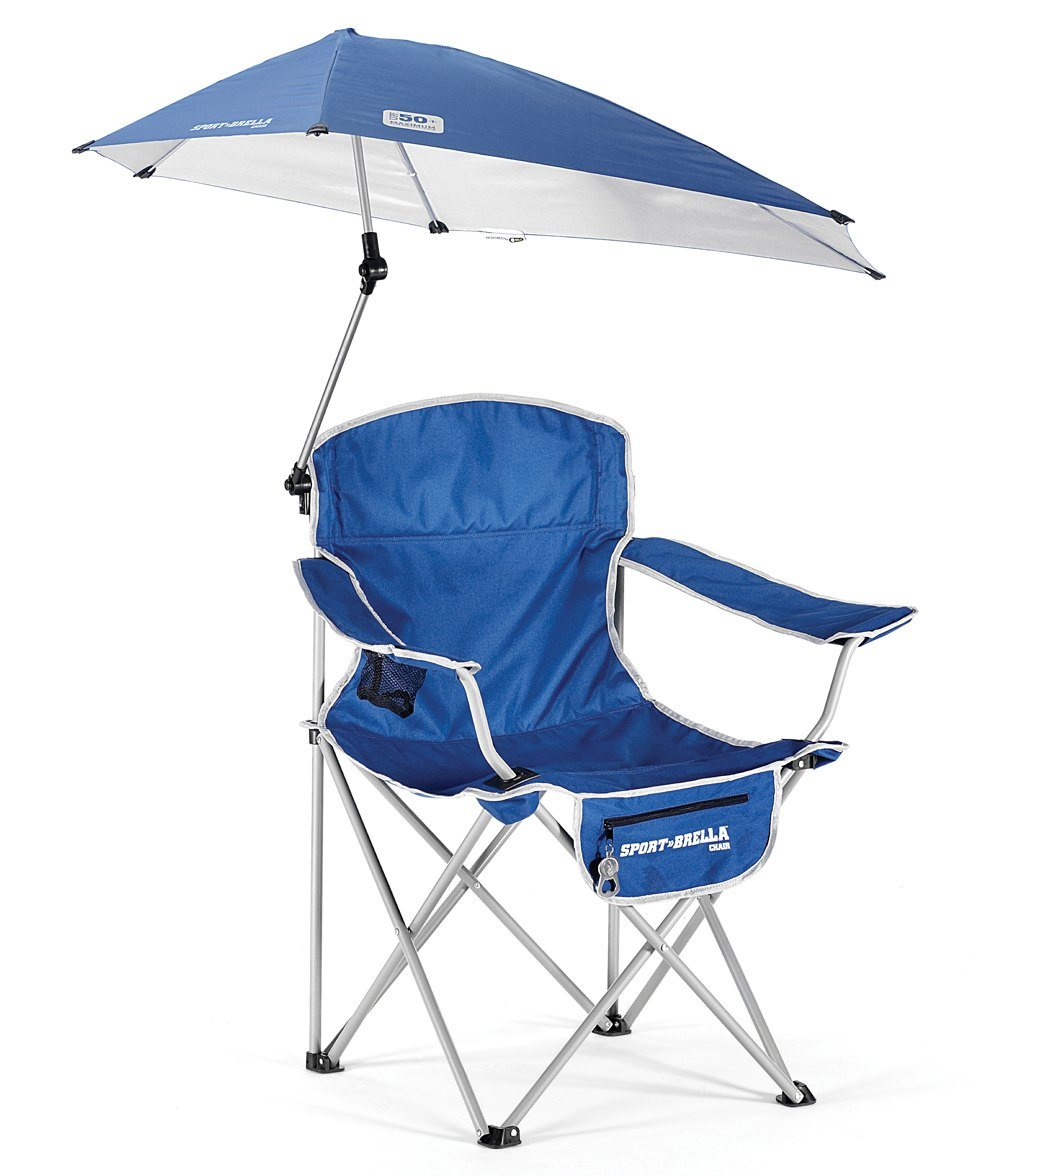 Best Beach Chair 5 Best Beach Chairs In 2018 Compared Comfort Size